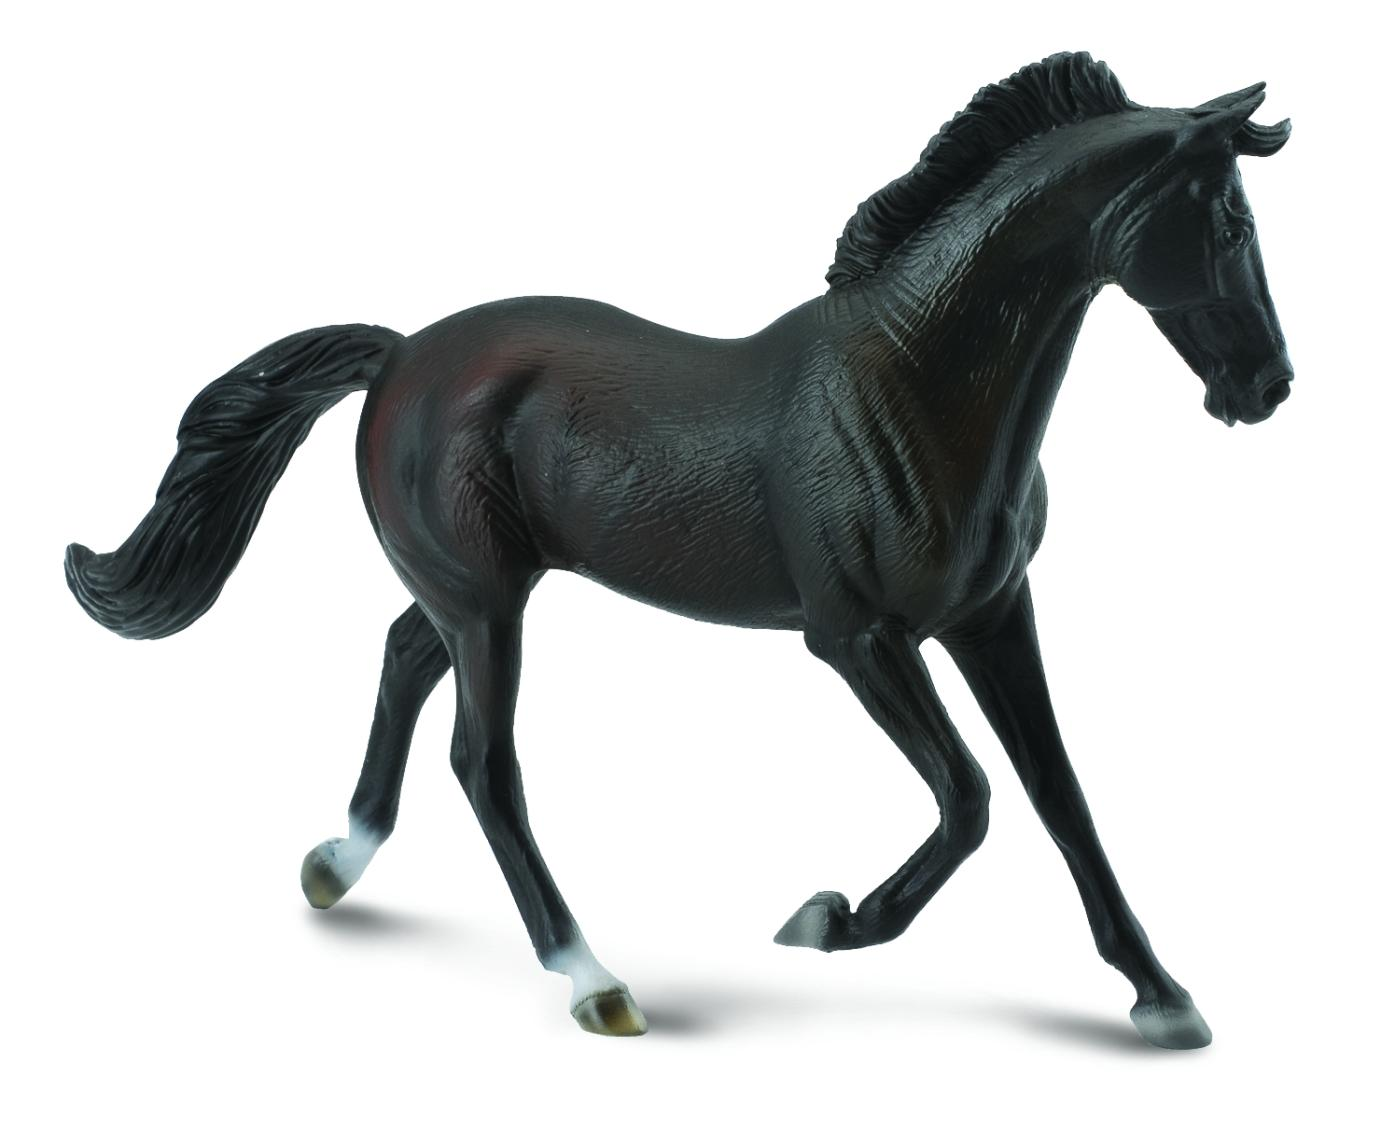 Breyer Classics Black Thoroughbred Toy Horse (1:12 Scale ...  Thoroughbred Toys